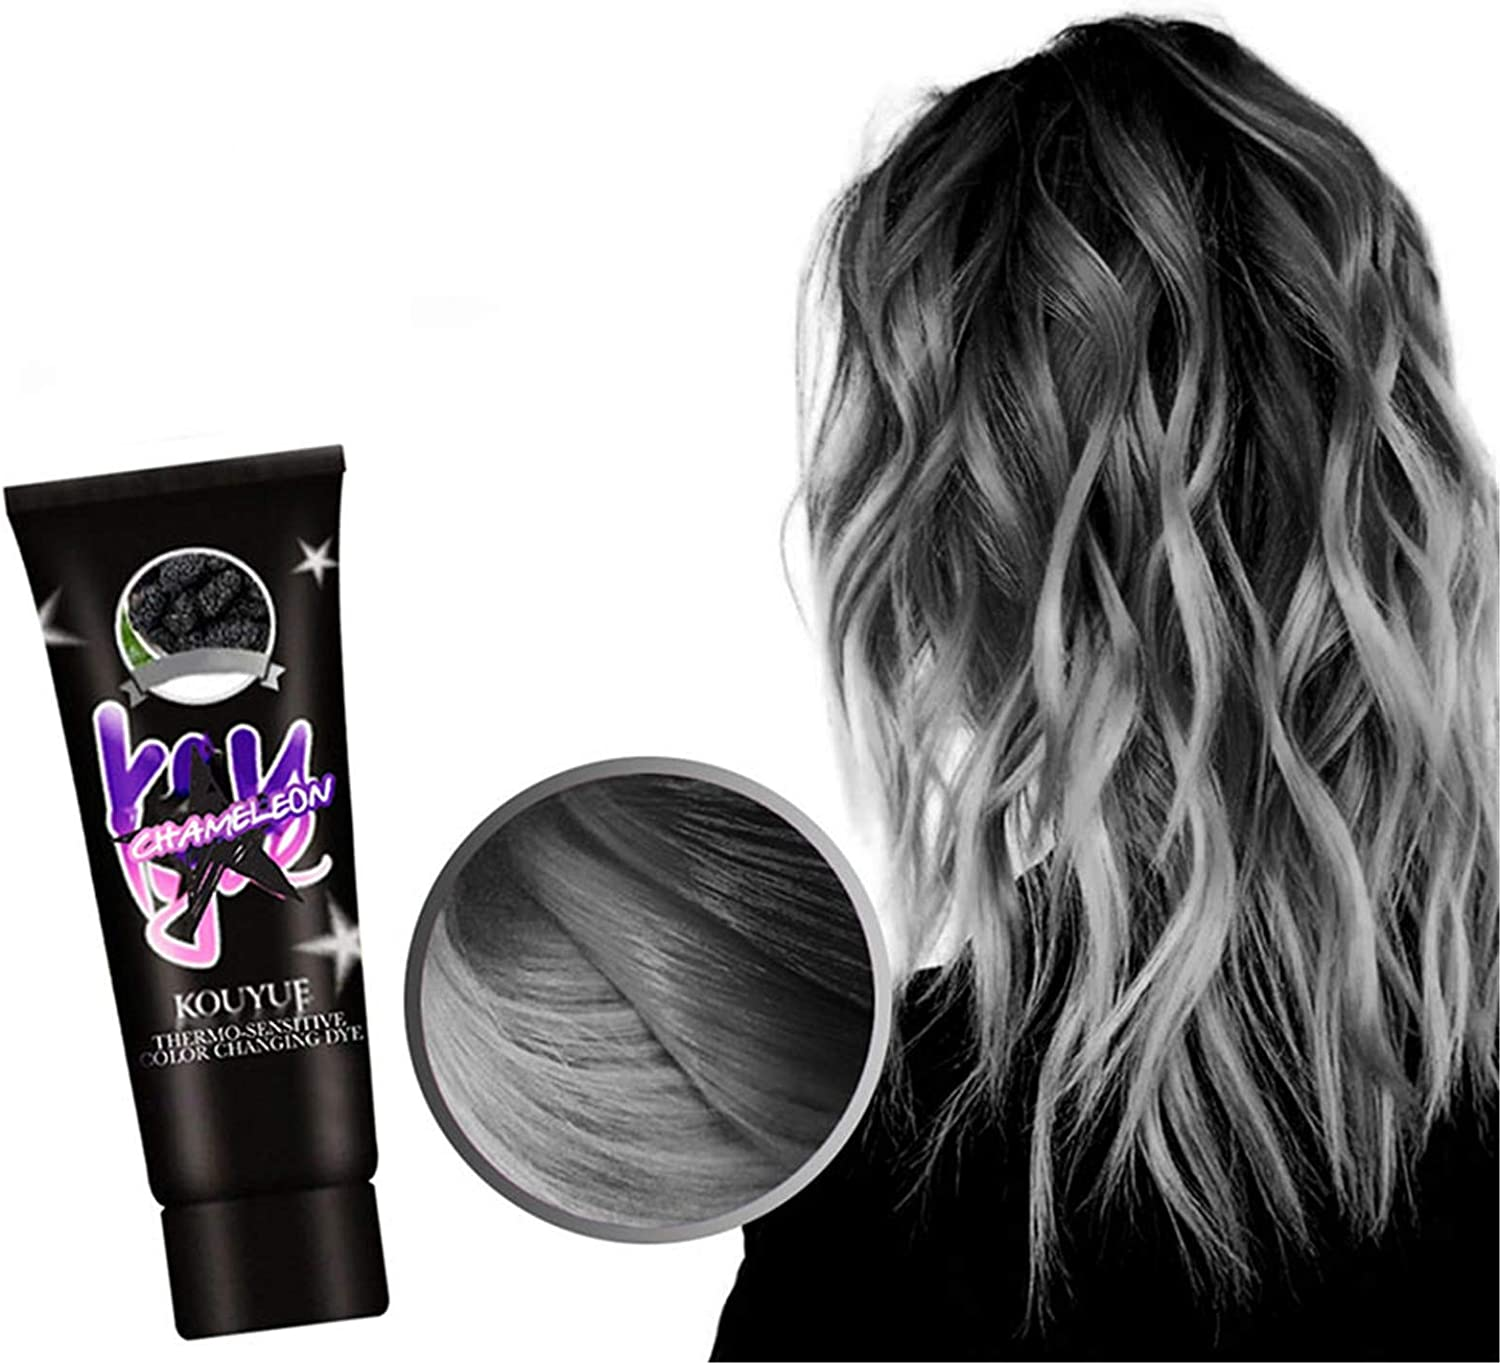 Thermochromic Color Changing 5 popular Wonder Cr Fashion Dye Hair gift